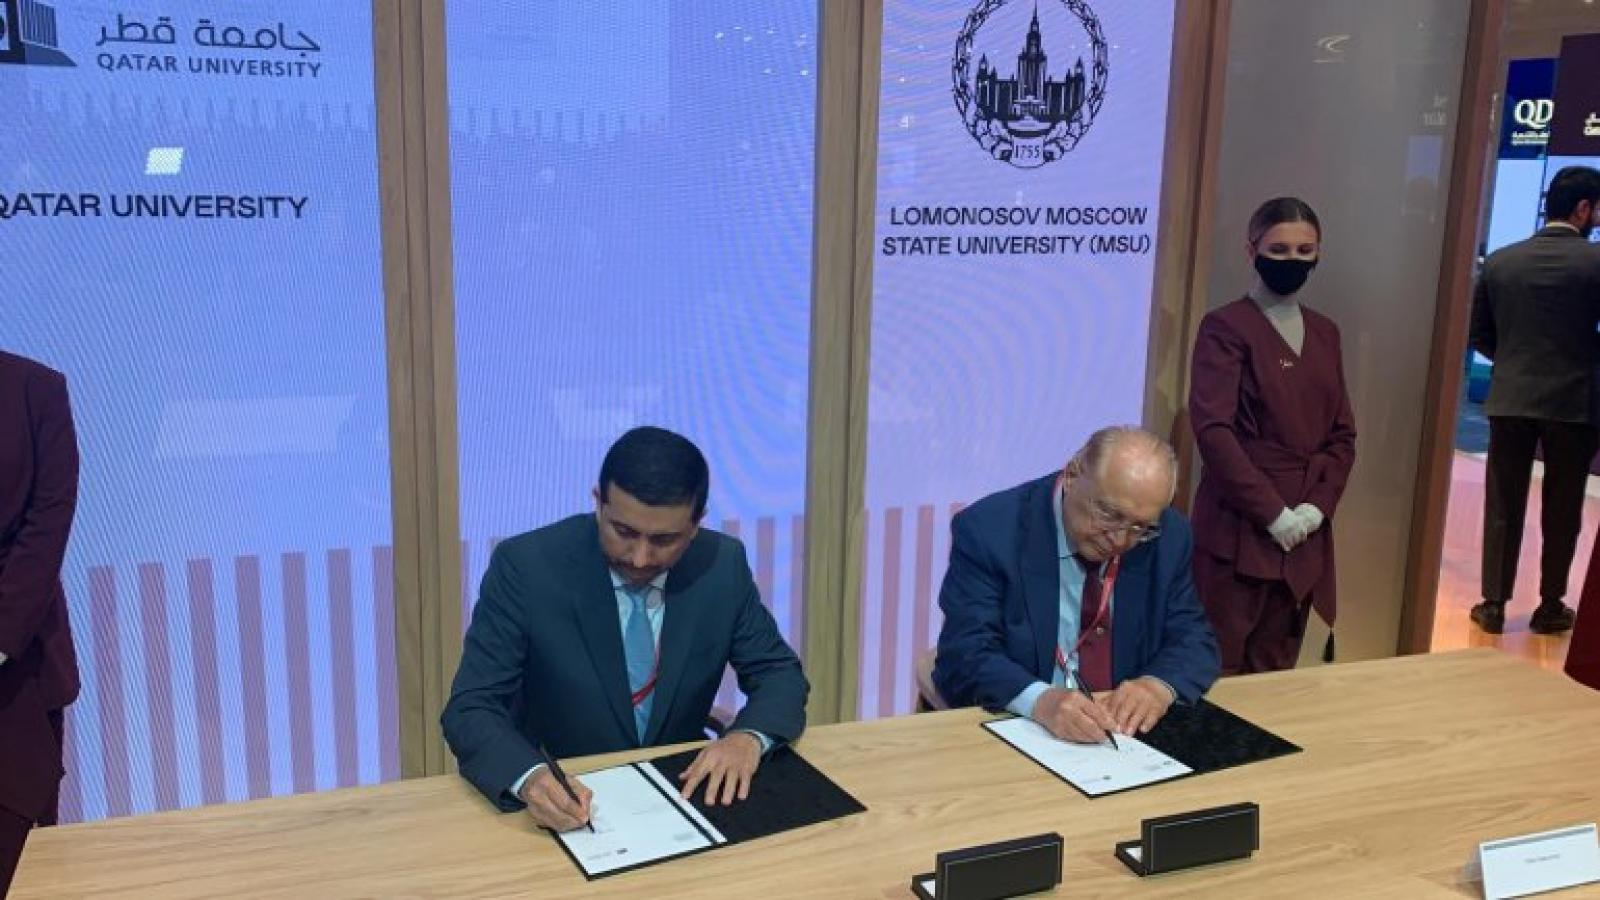 Qatar University signs MoU with several Russian universities